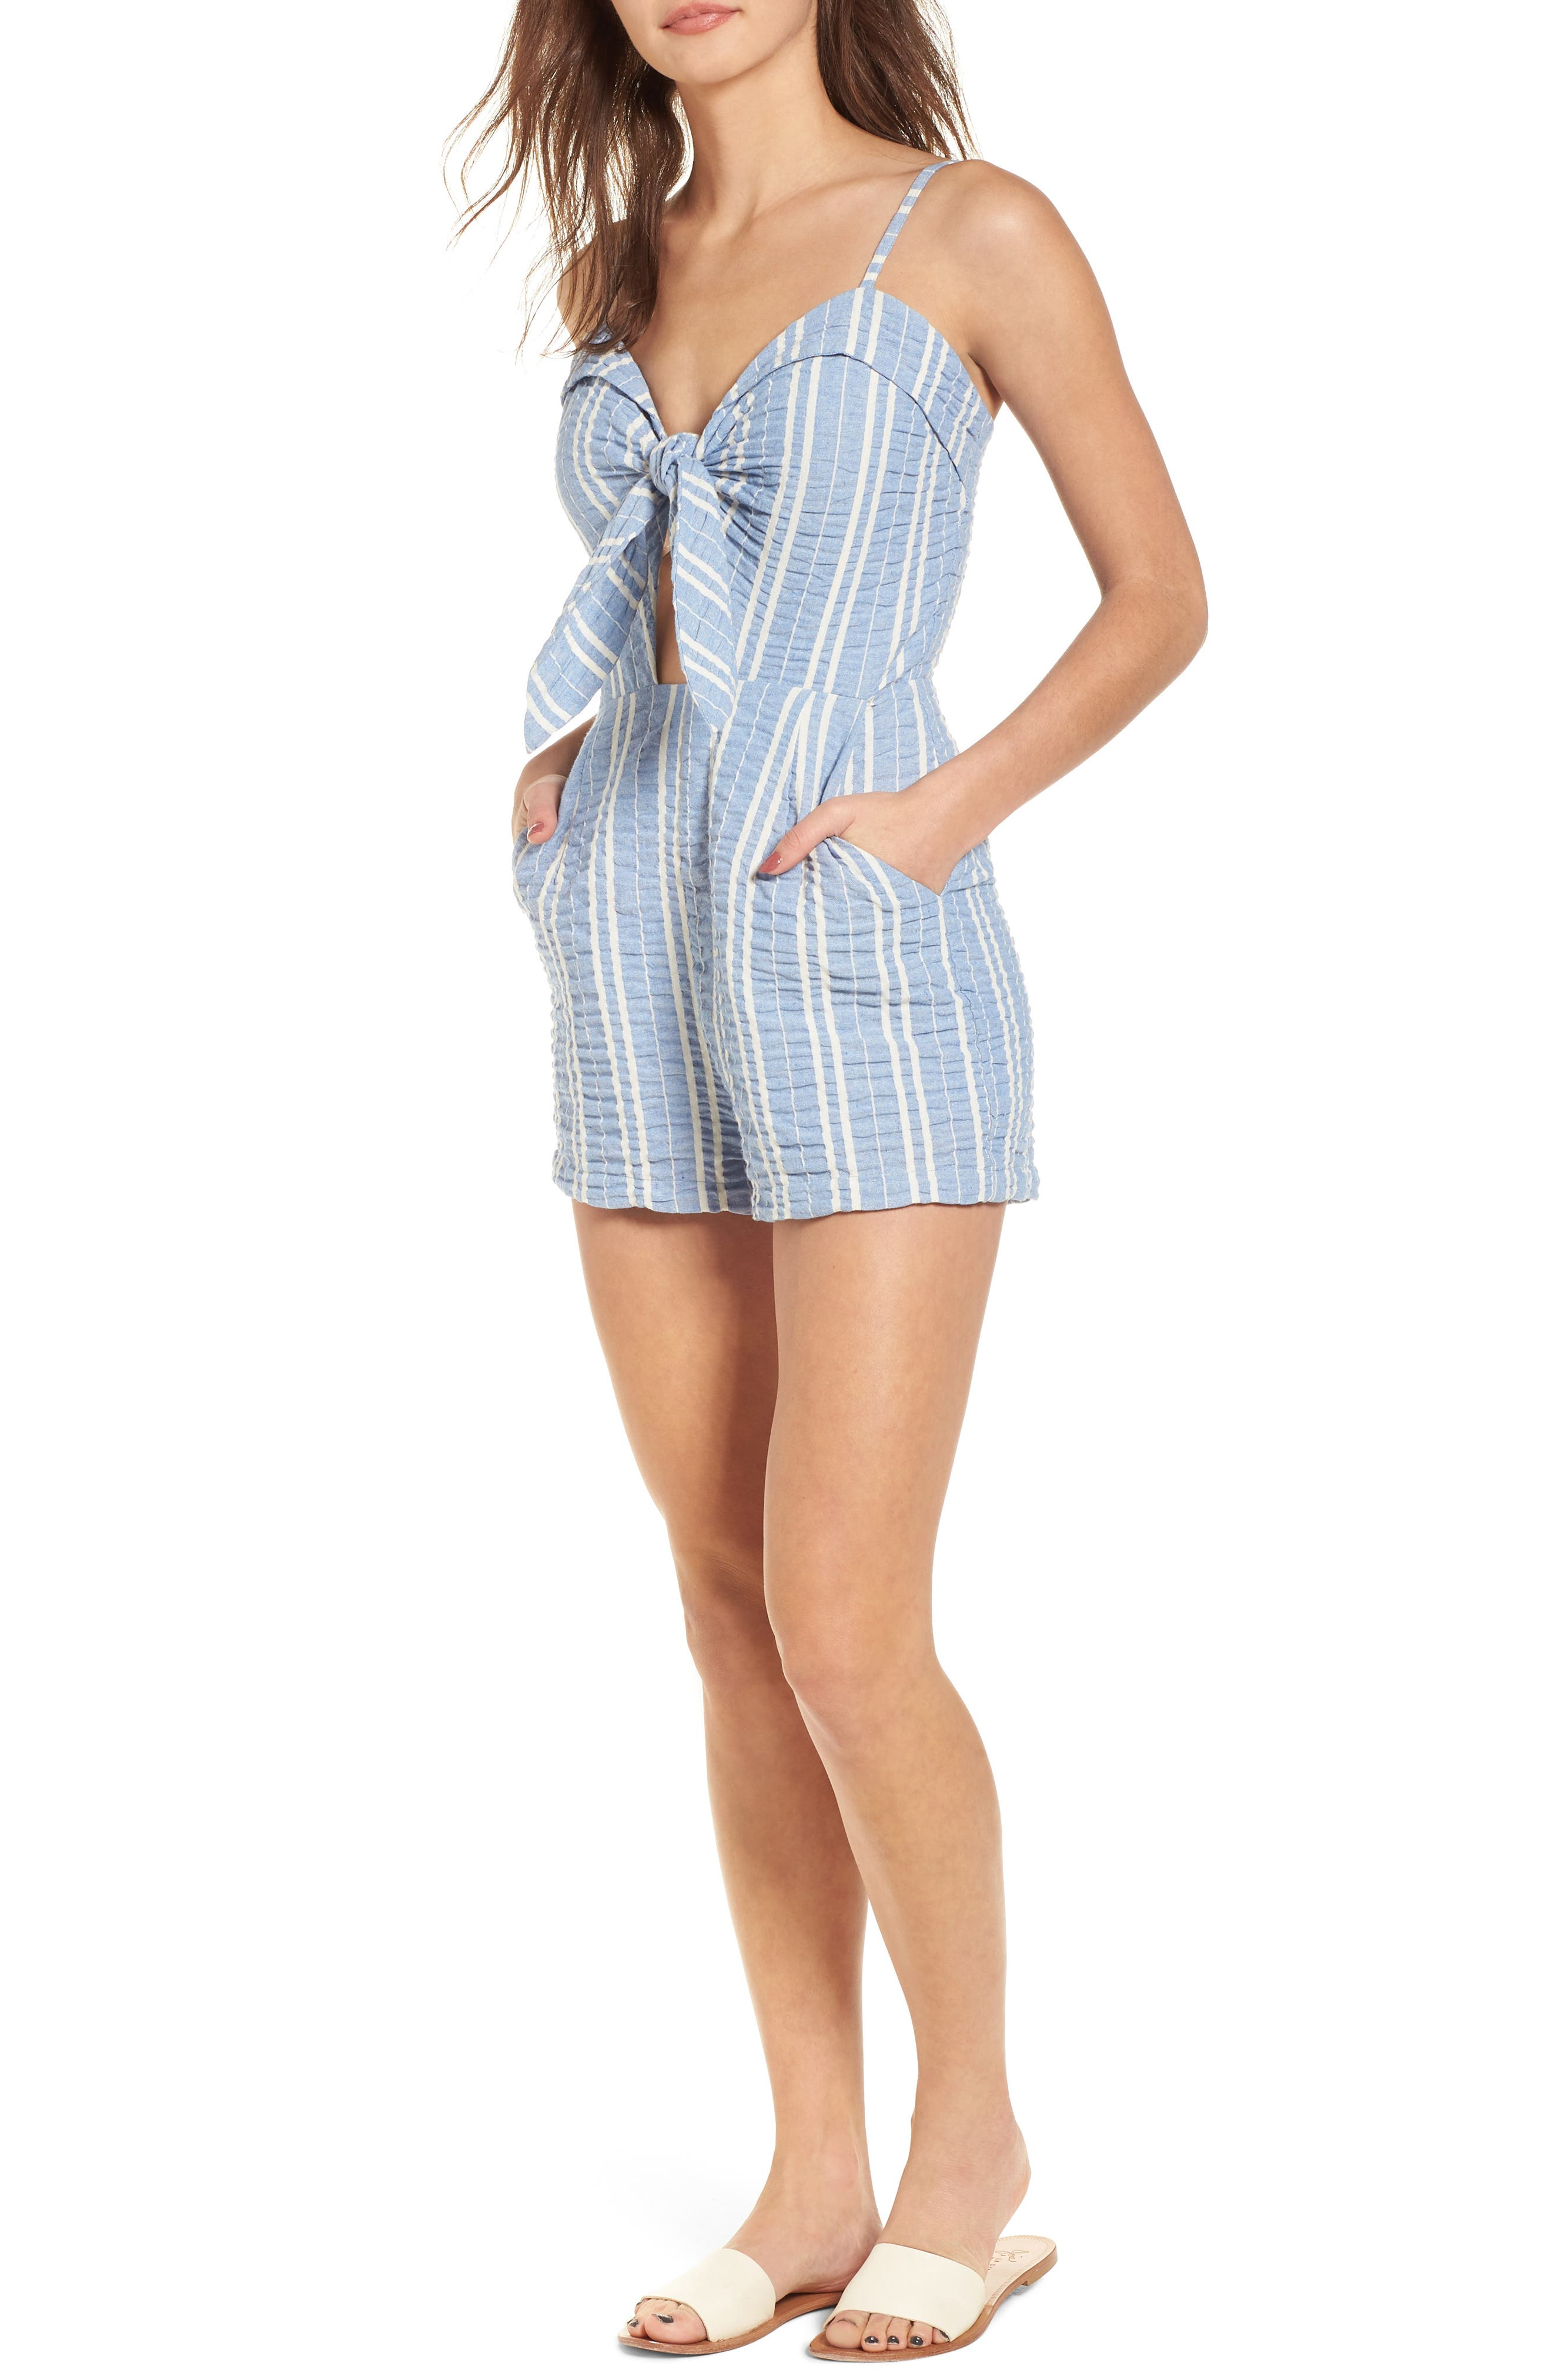 LOST + WANDER, Waves Stripe Tie Front Romper, Main thumbnail 1, color, 466